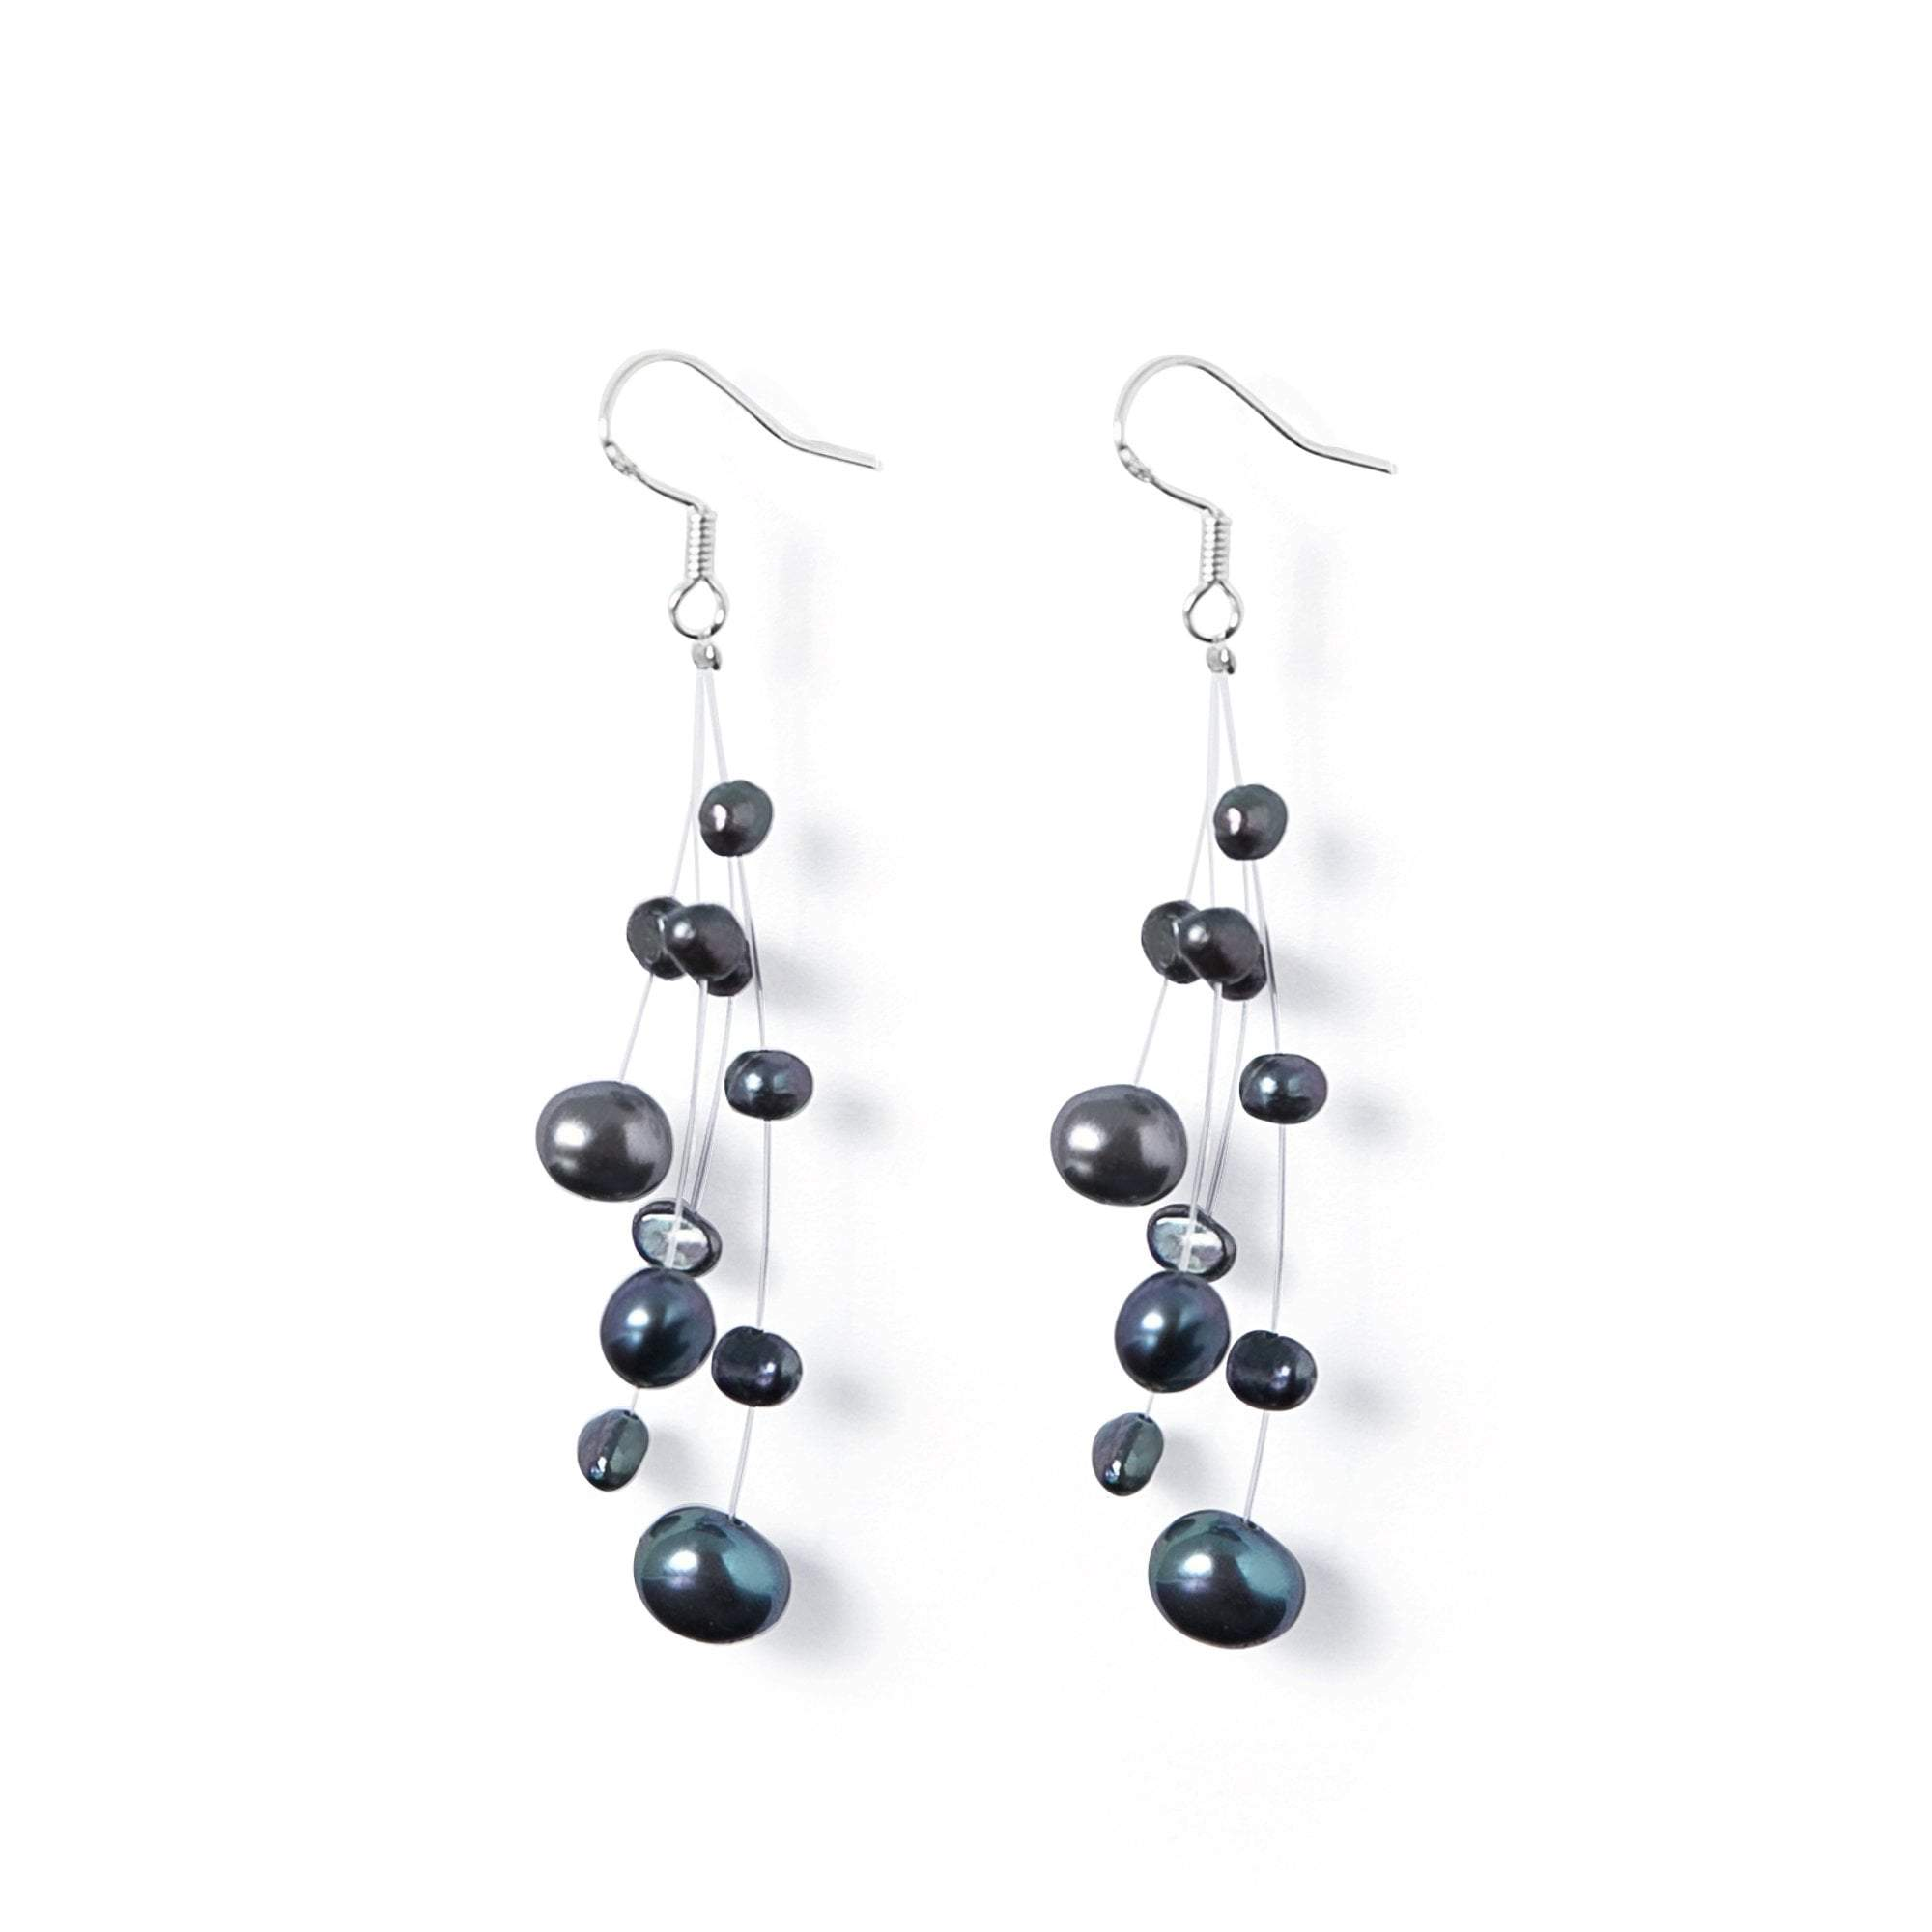 Boucles Perles de Culture d'Eau Douce - Constellation - Nuit